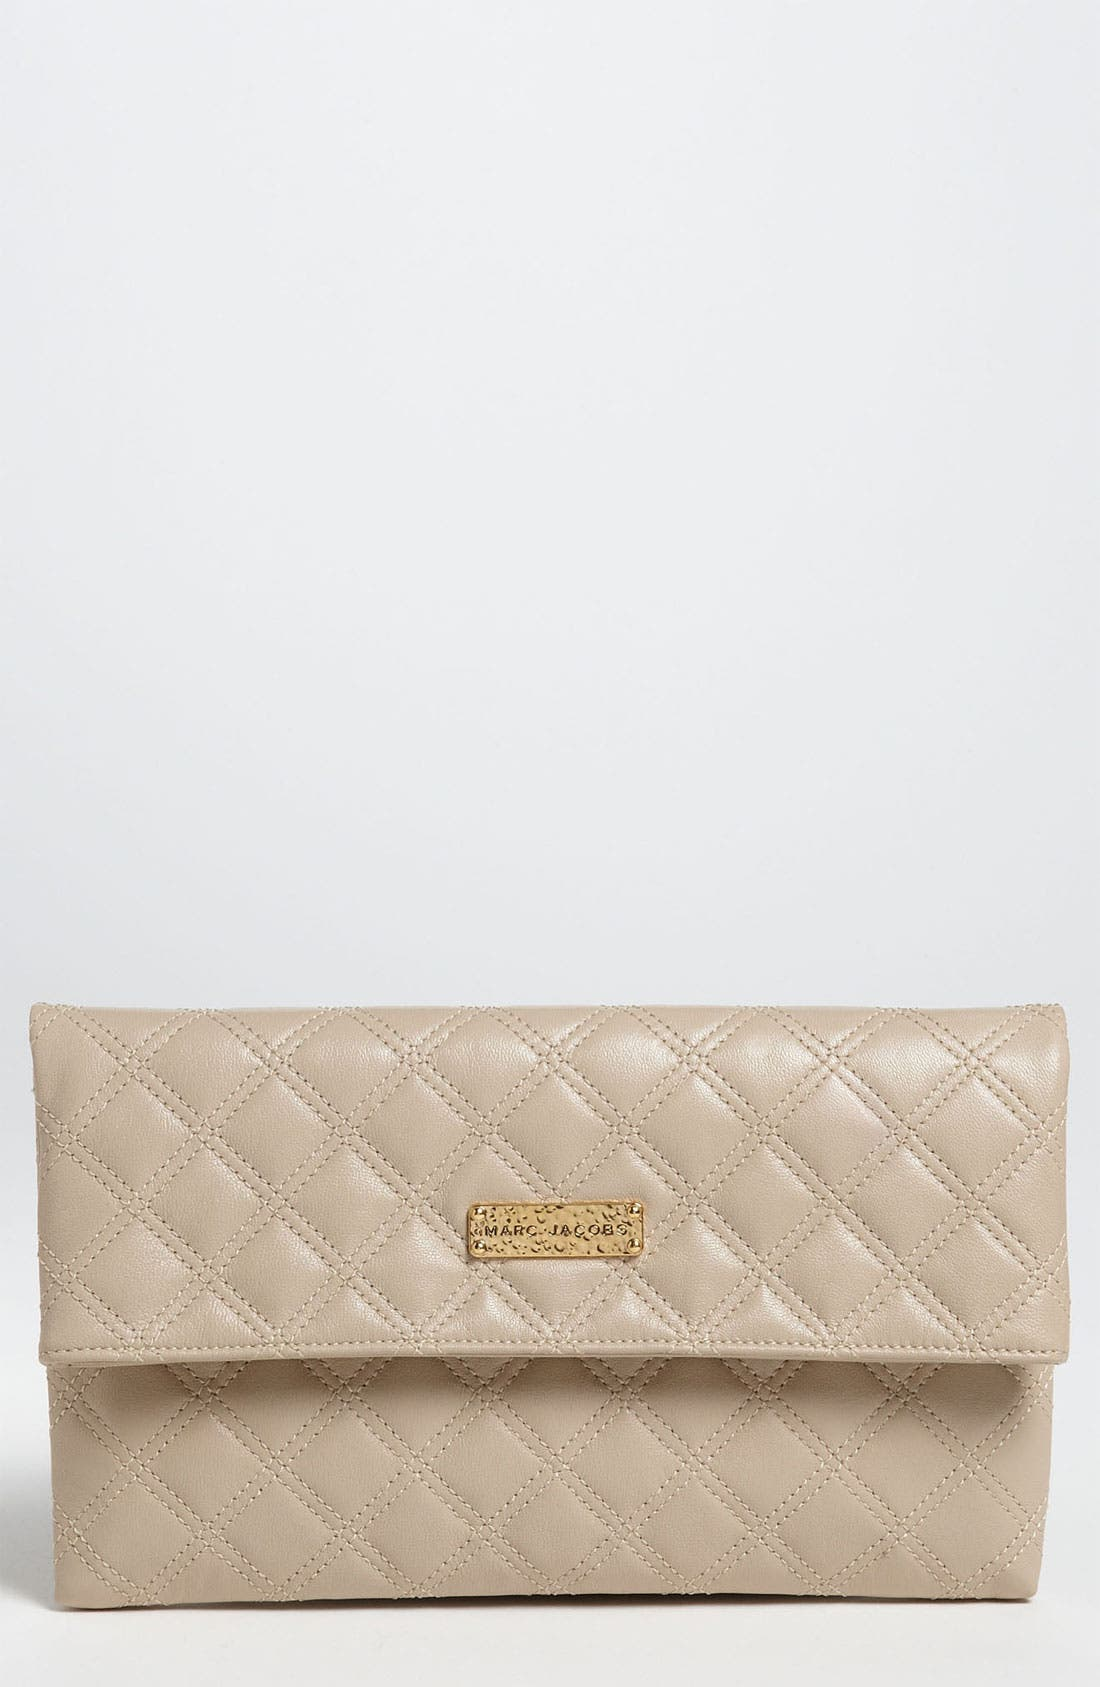 Main Image - MARC JACOBS 'Large Eugenie' Quilted Leather Clutch